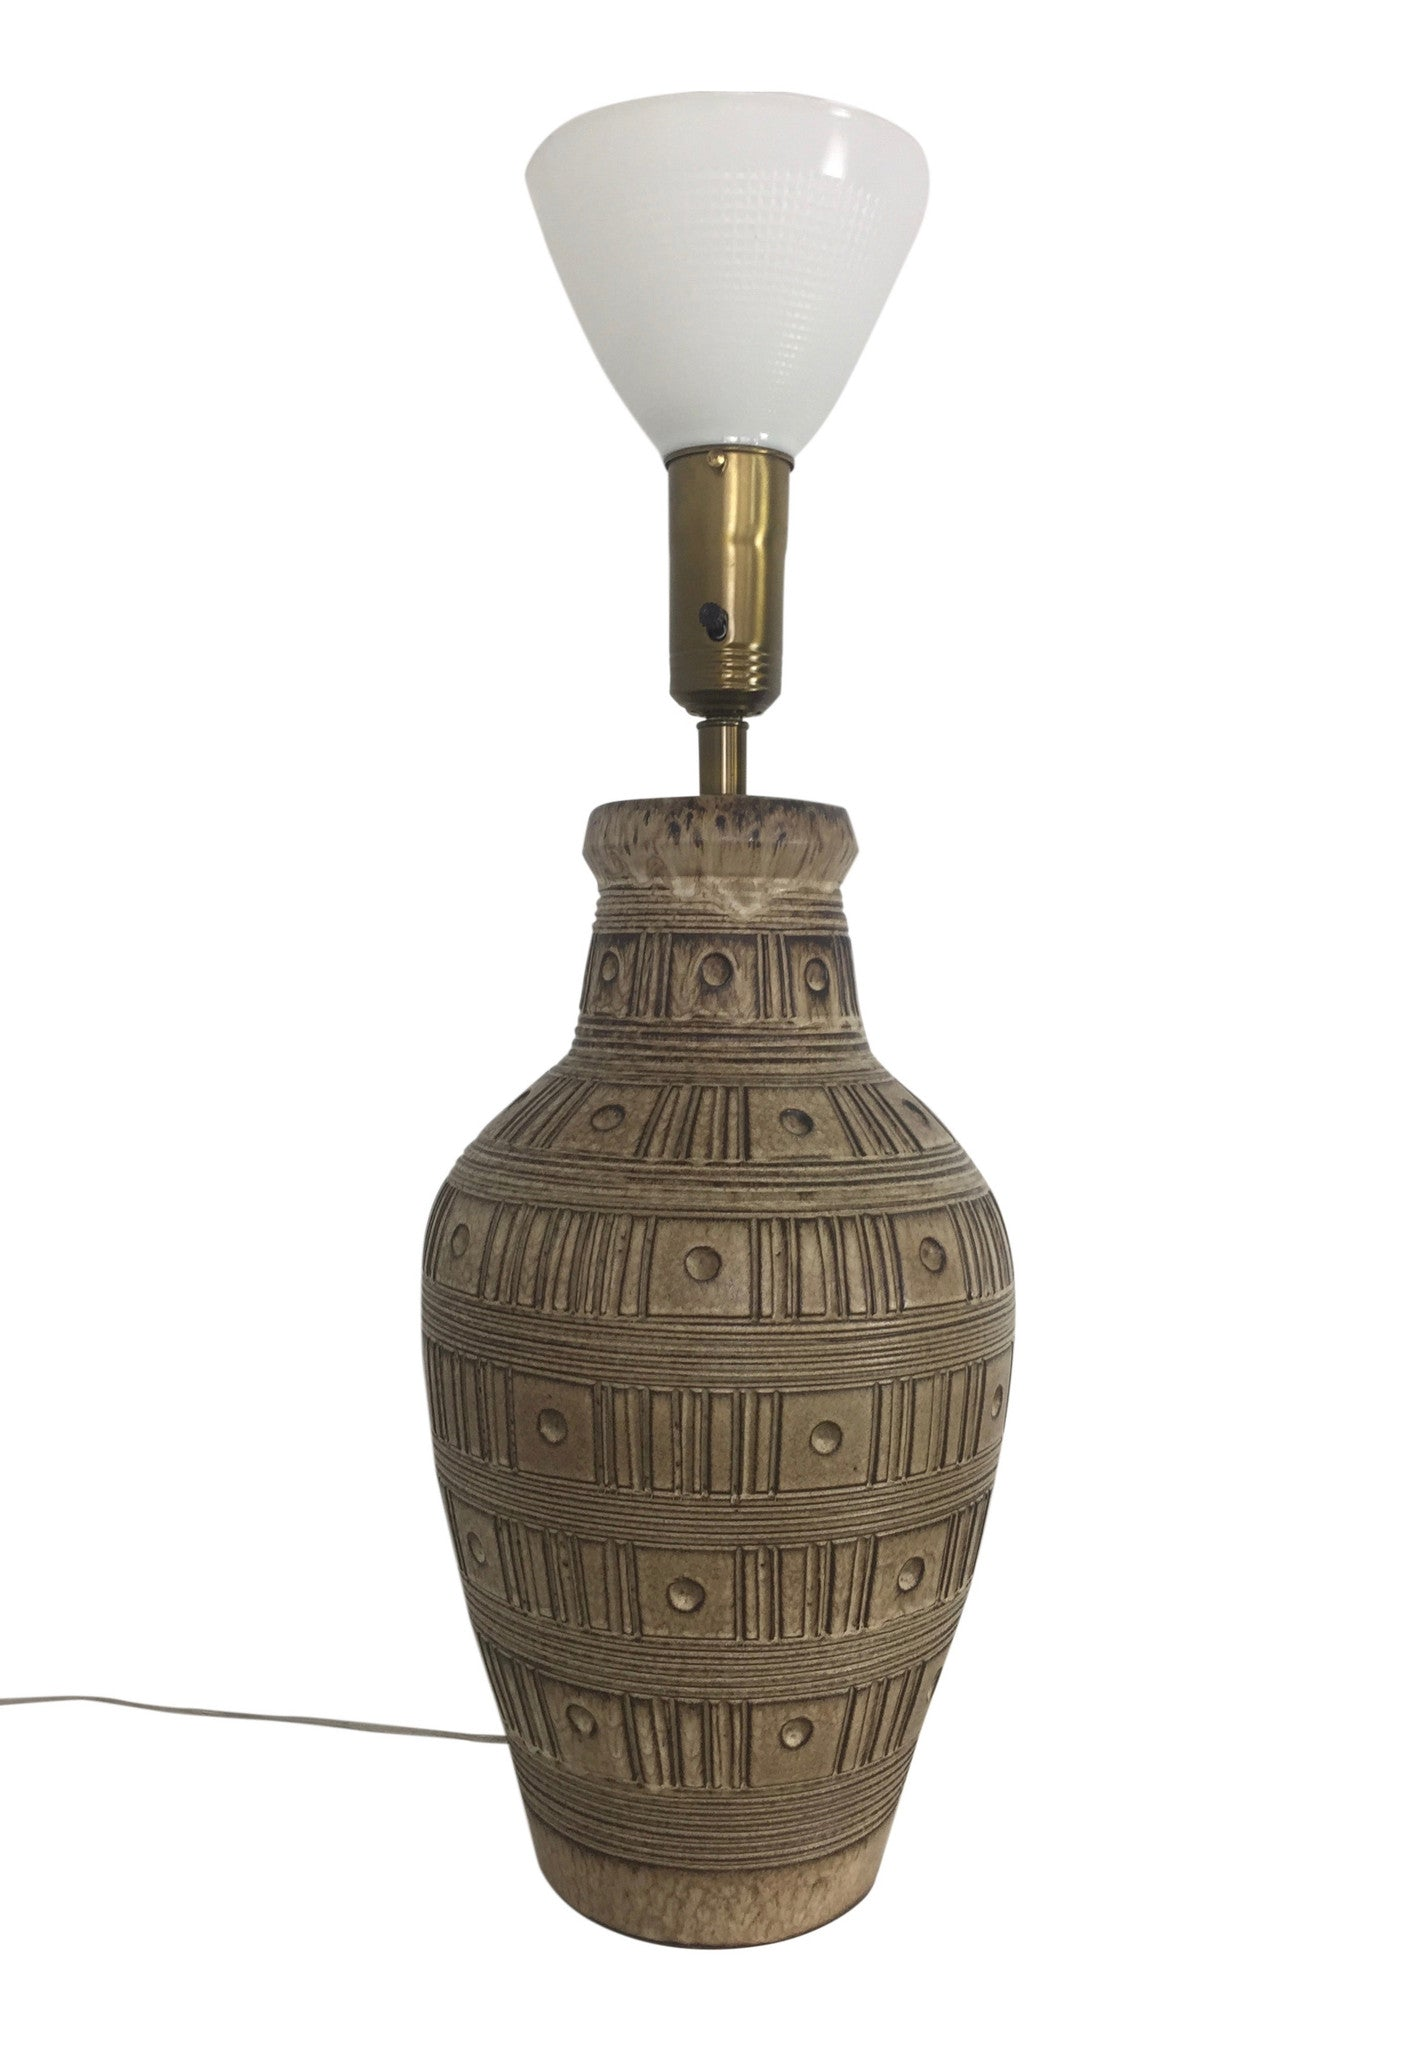 Design Technics Incised Ceramic Table Lamp